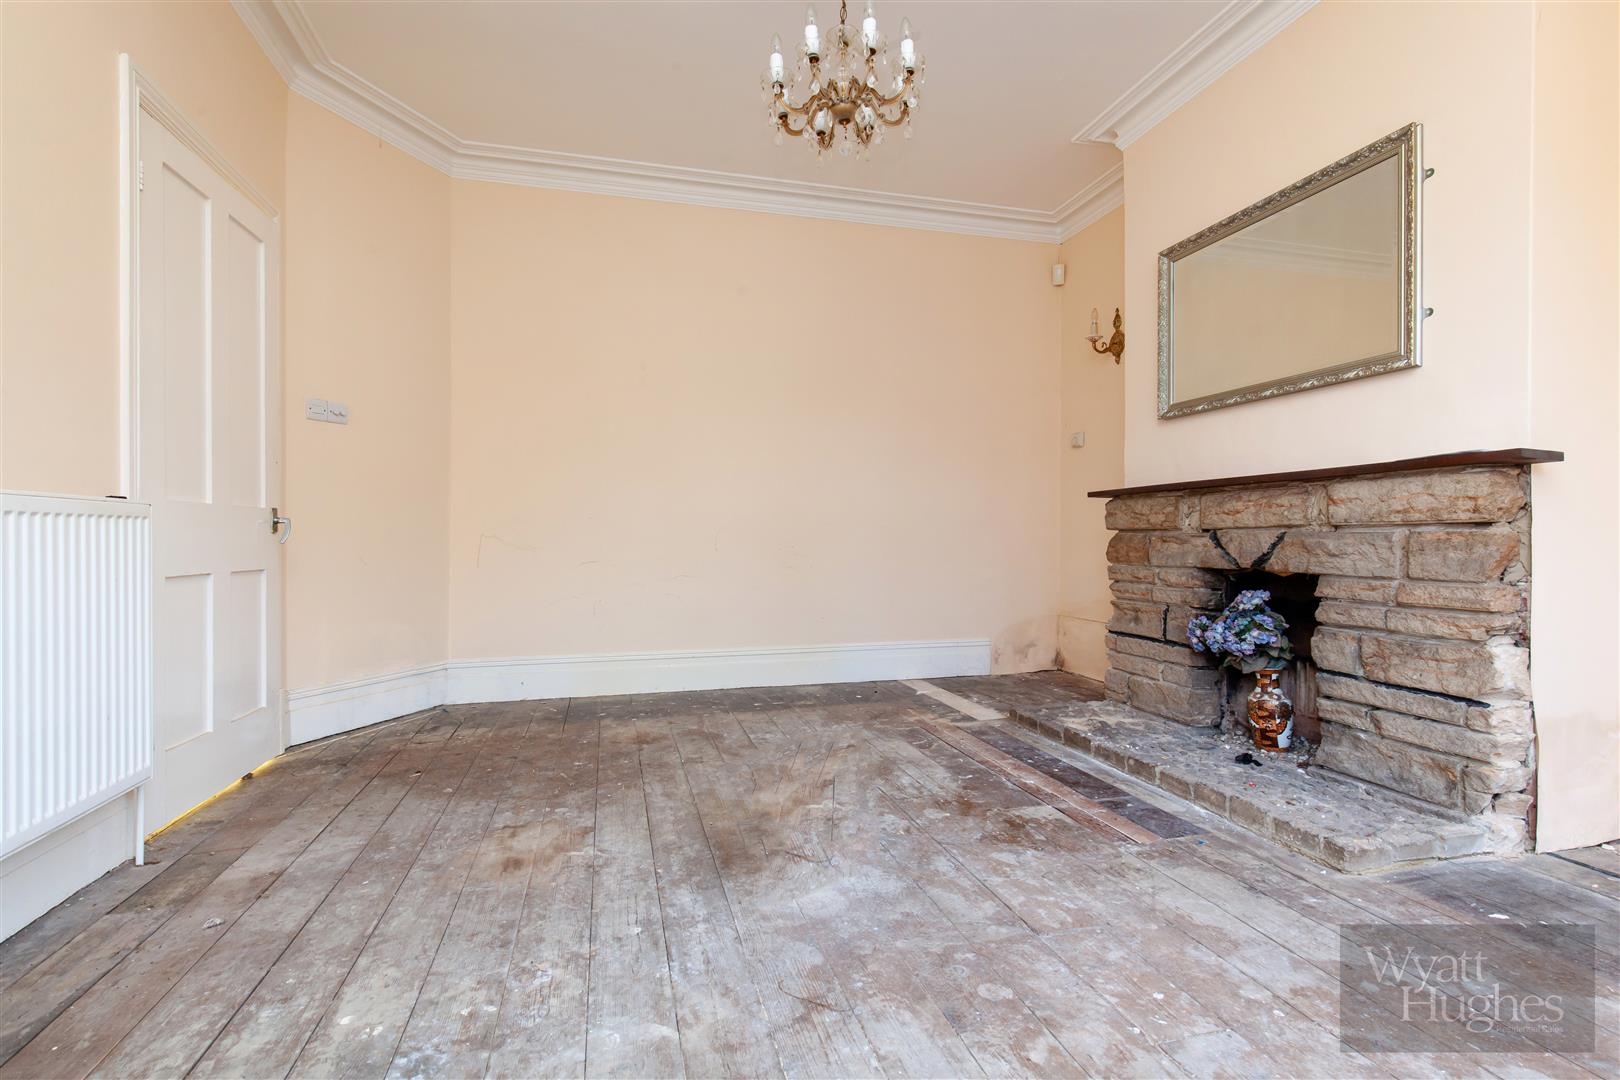 3 bed end-of-terrace-house for sale in Burry Road, St. Leonards-On-Sea  - Property Image 19